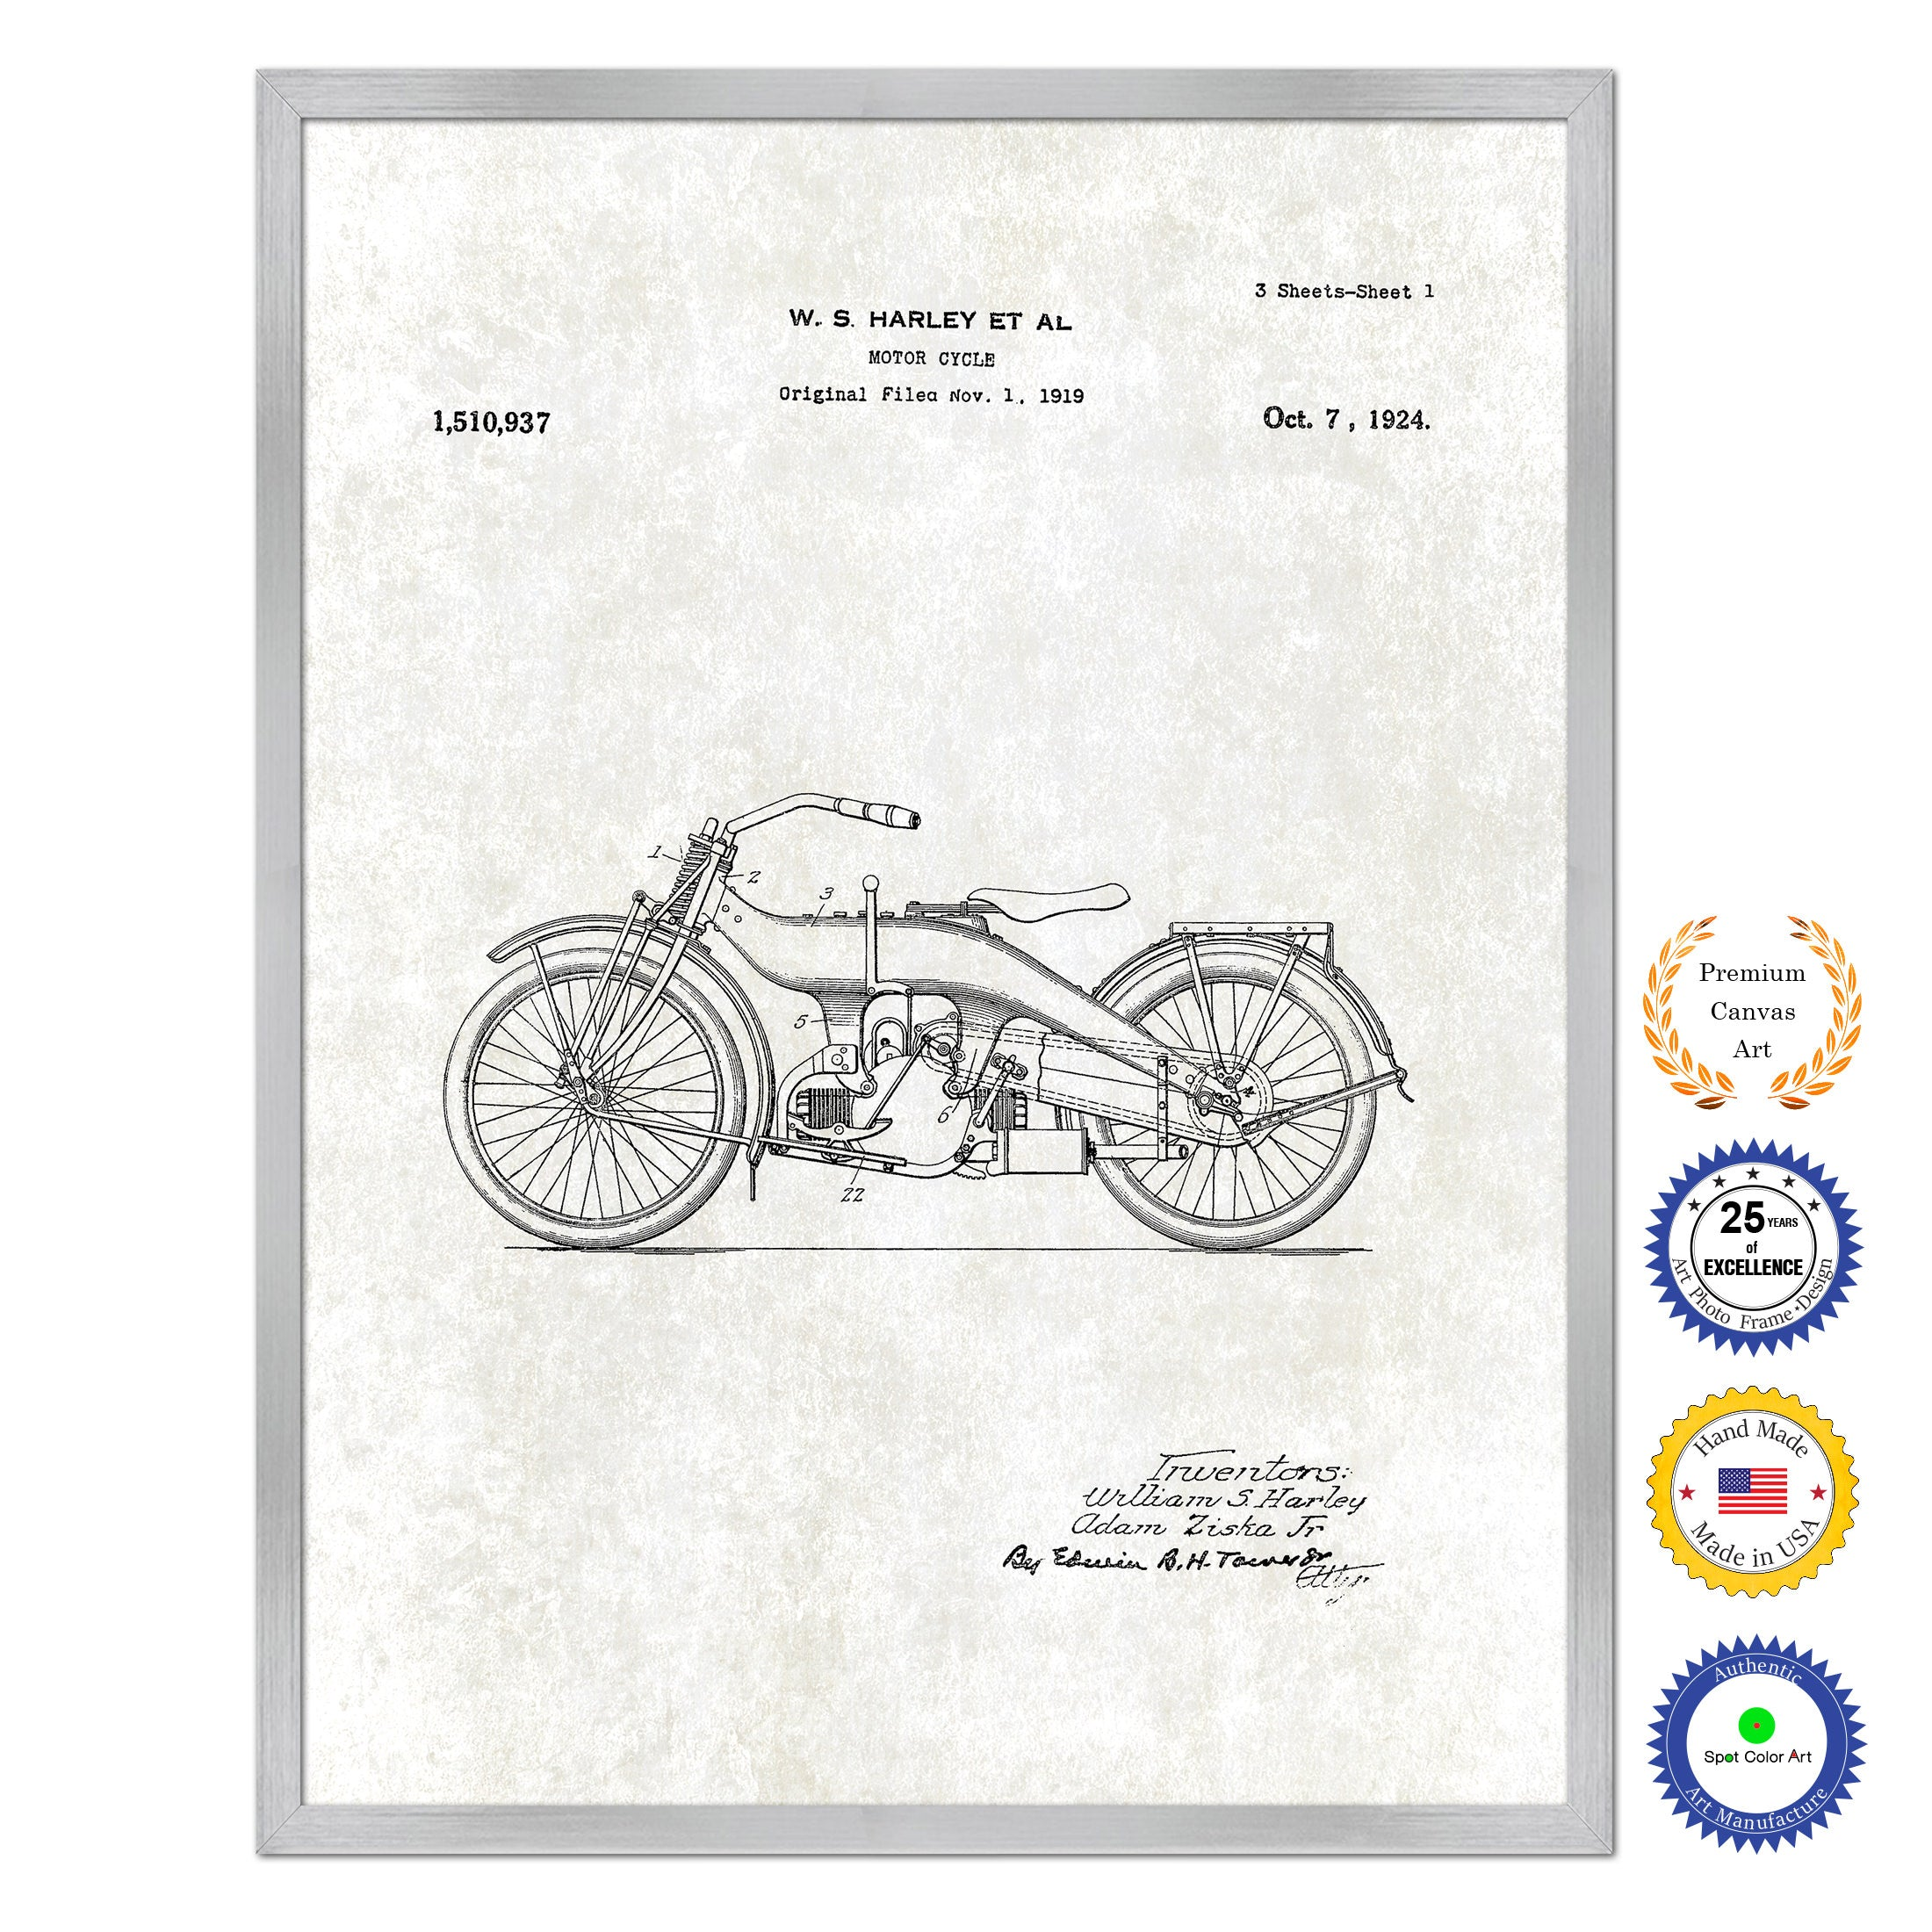 1924 Motor Cycle Old Patent Art Print on Canvas Custom Framed Vintage Home Decor Wall Decoration Great for Gifts